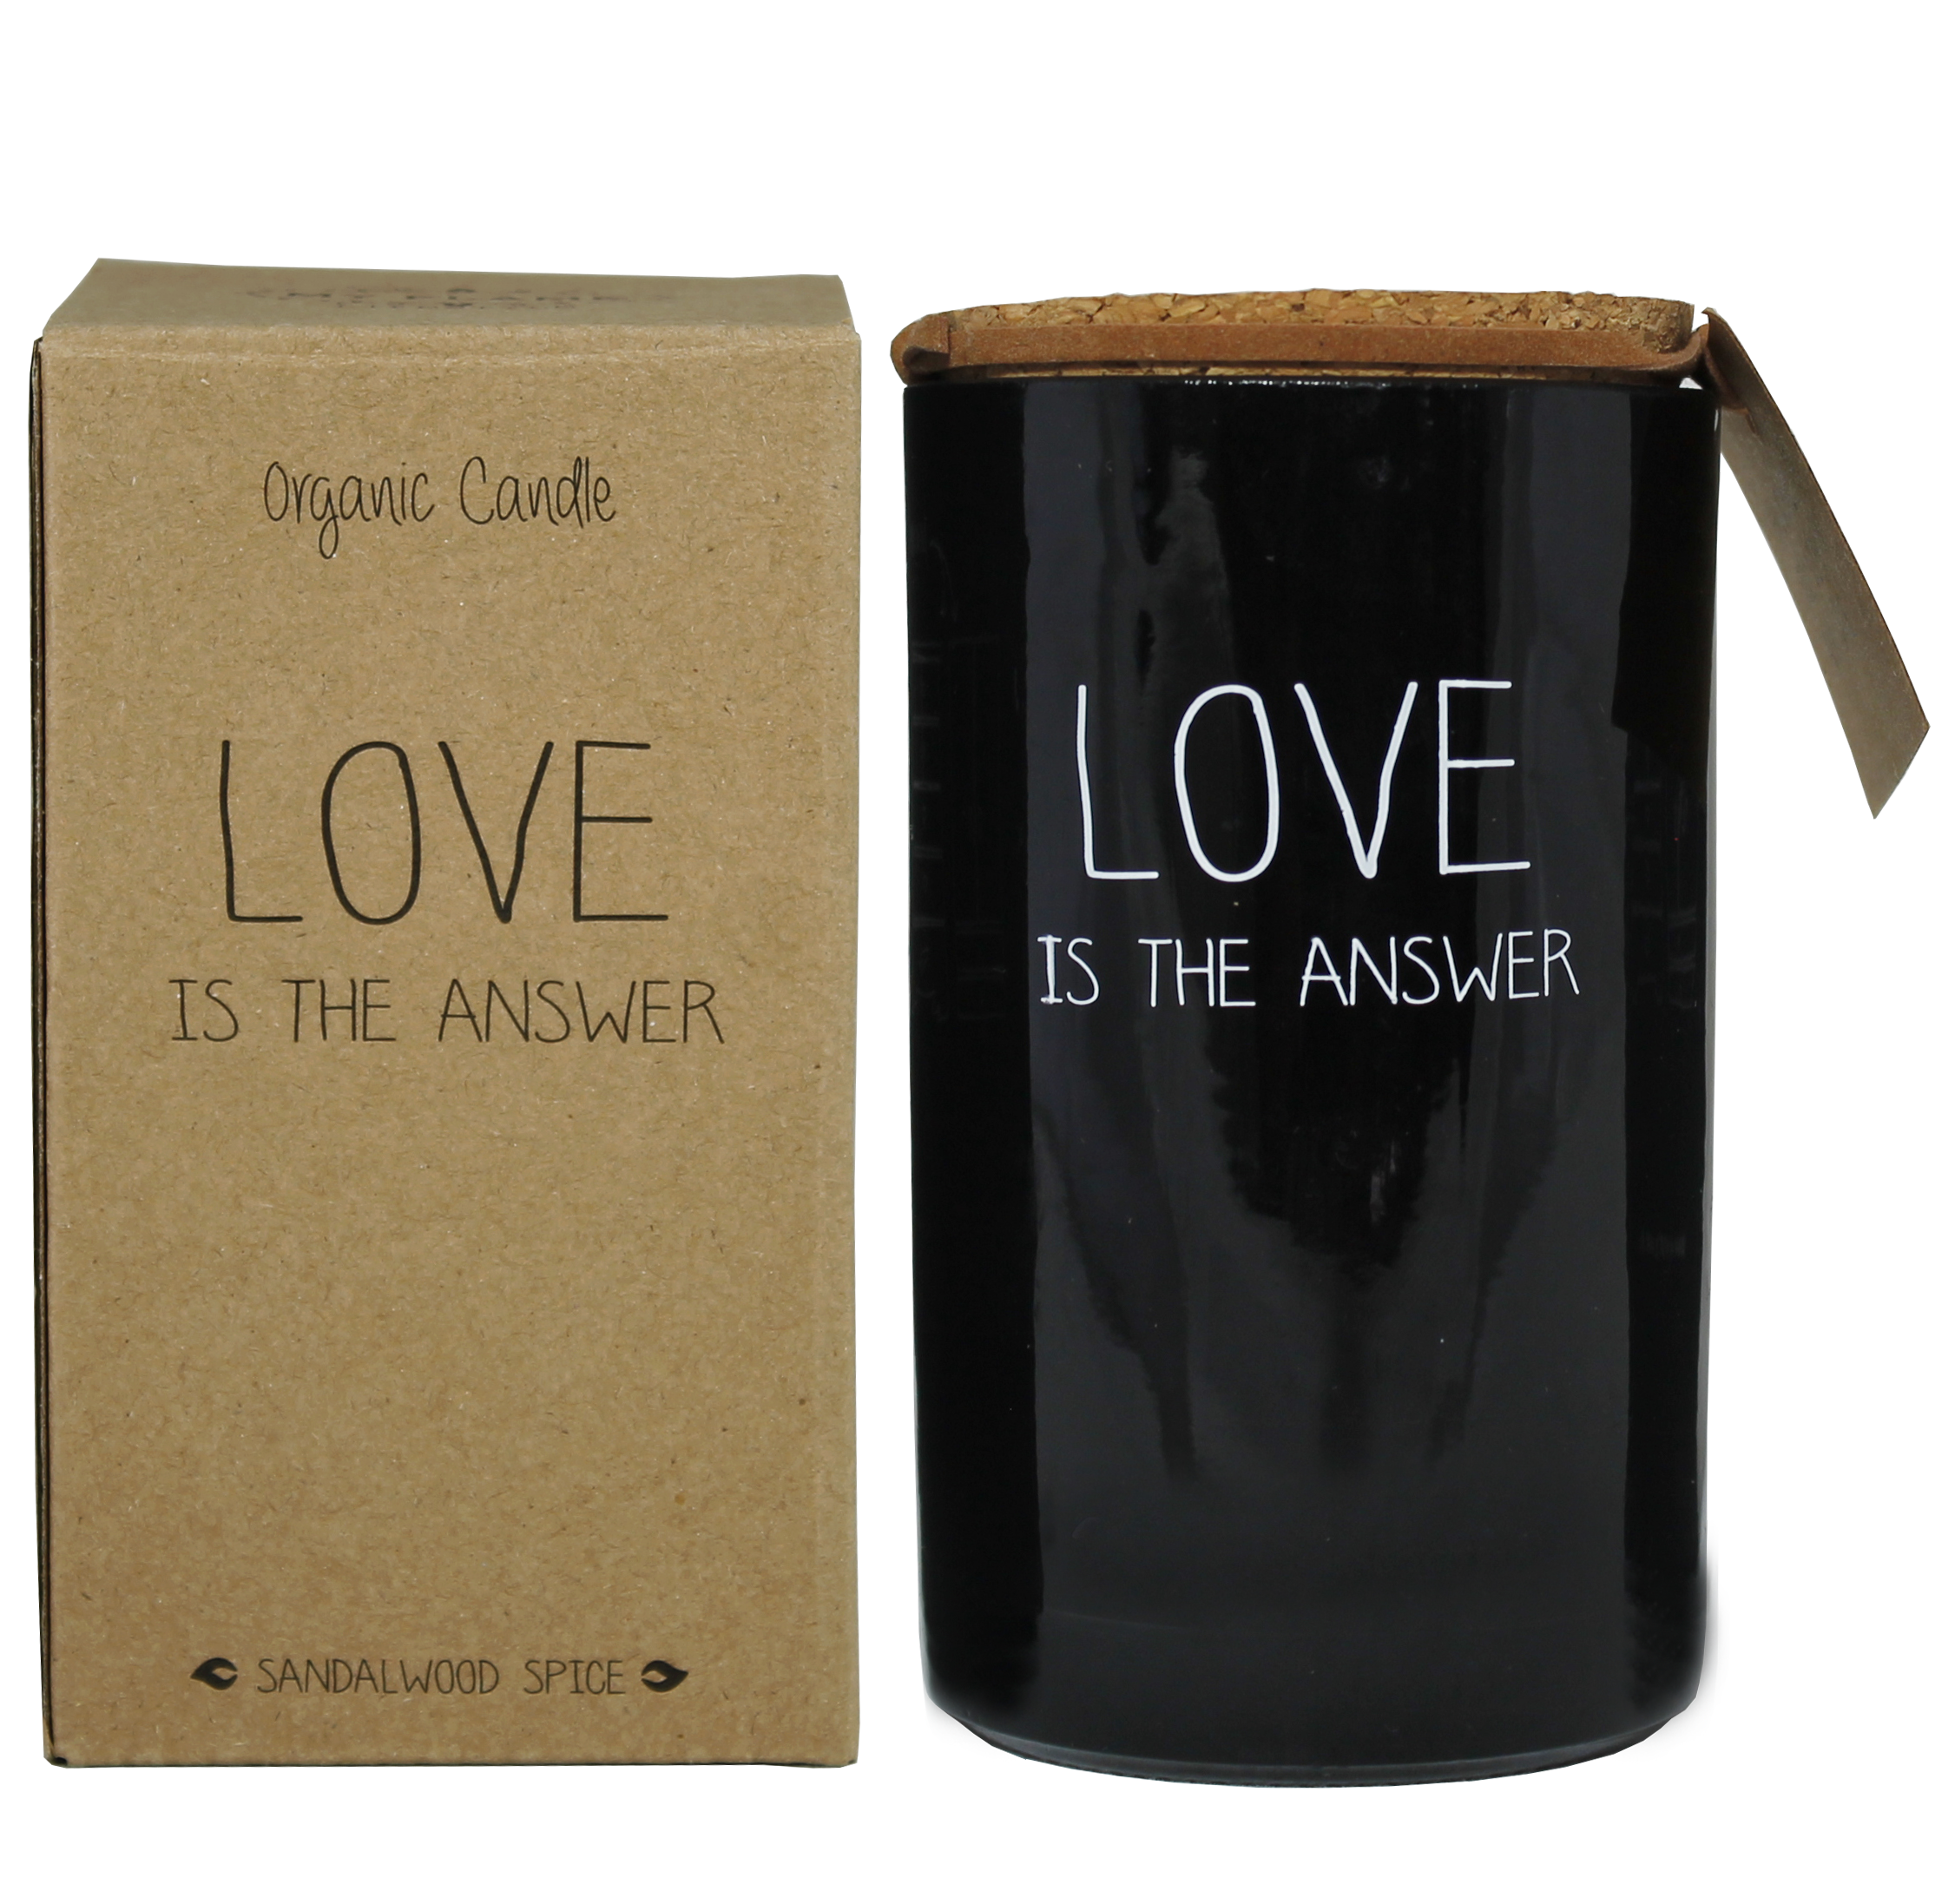 My Flame Lifestyle SOJAKAARS - LOVE IS THE ANSWER - GEUR: WARM CASHMERE